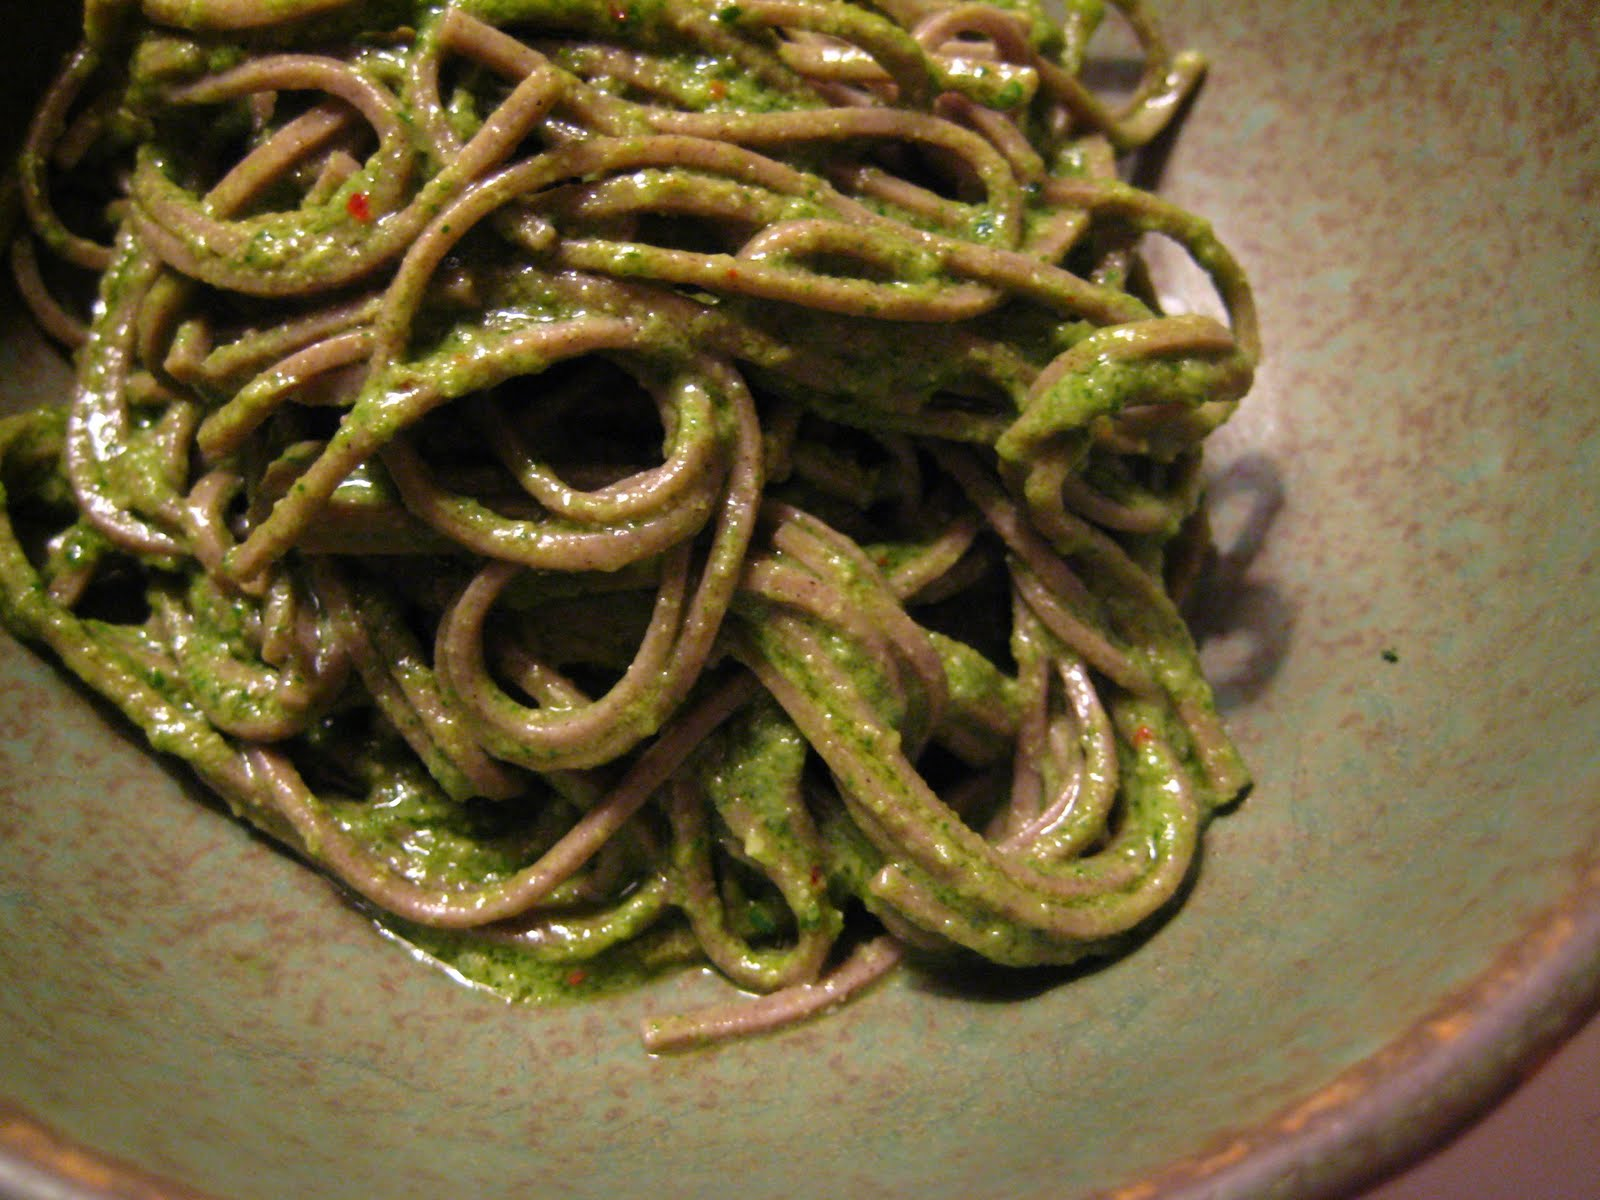 dandelion pesto with sunflower seeds and miso